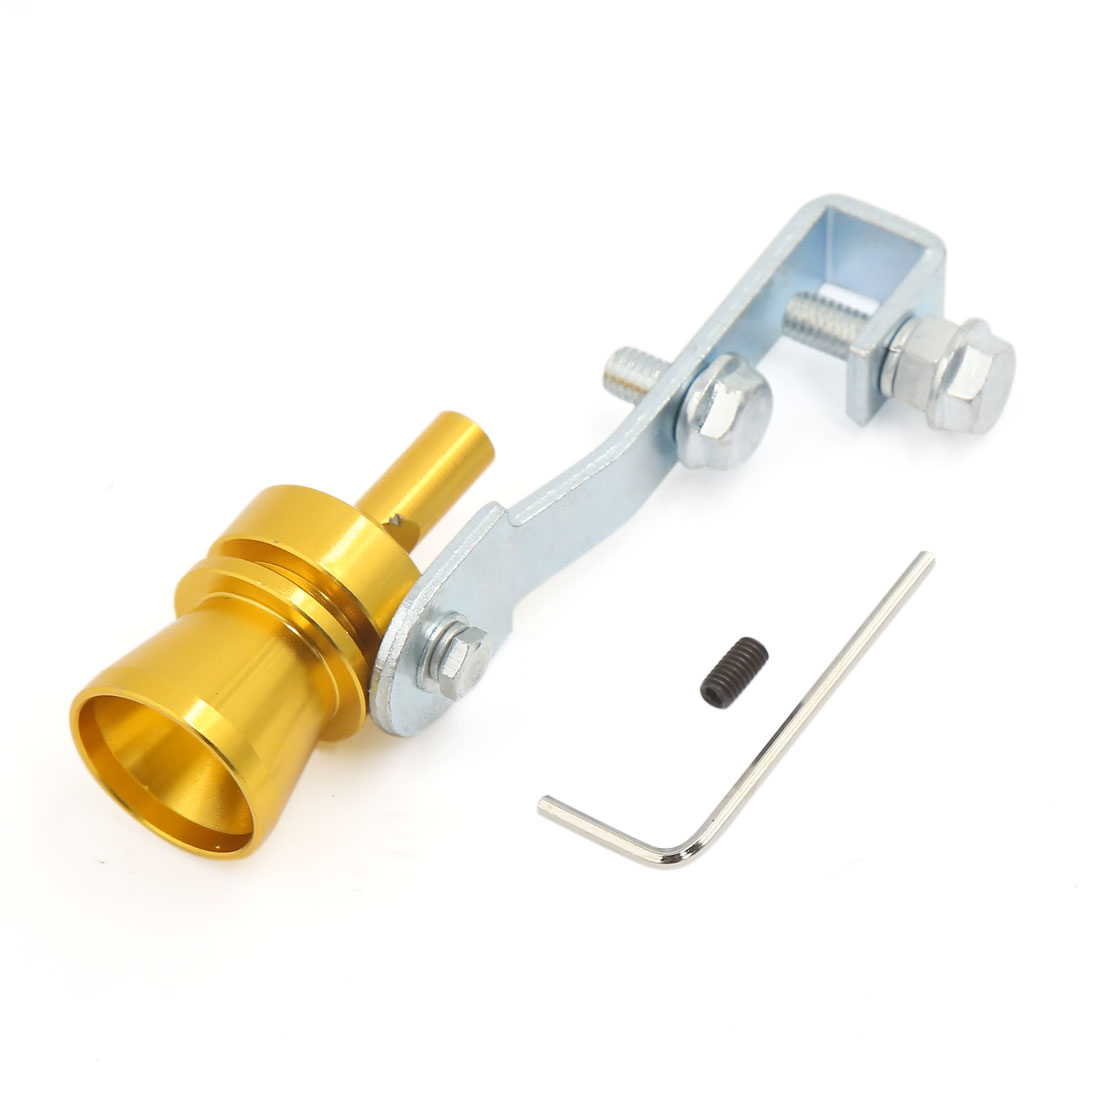 Golden Tone Turbo Sound Whistle Muffler Exhaust Pipe Simulator Whistler M